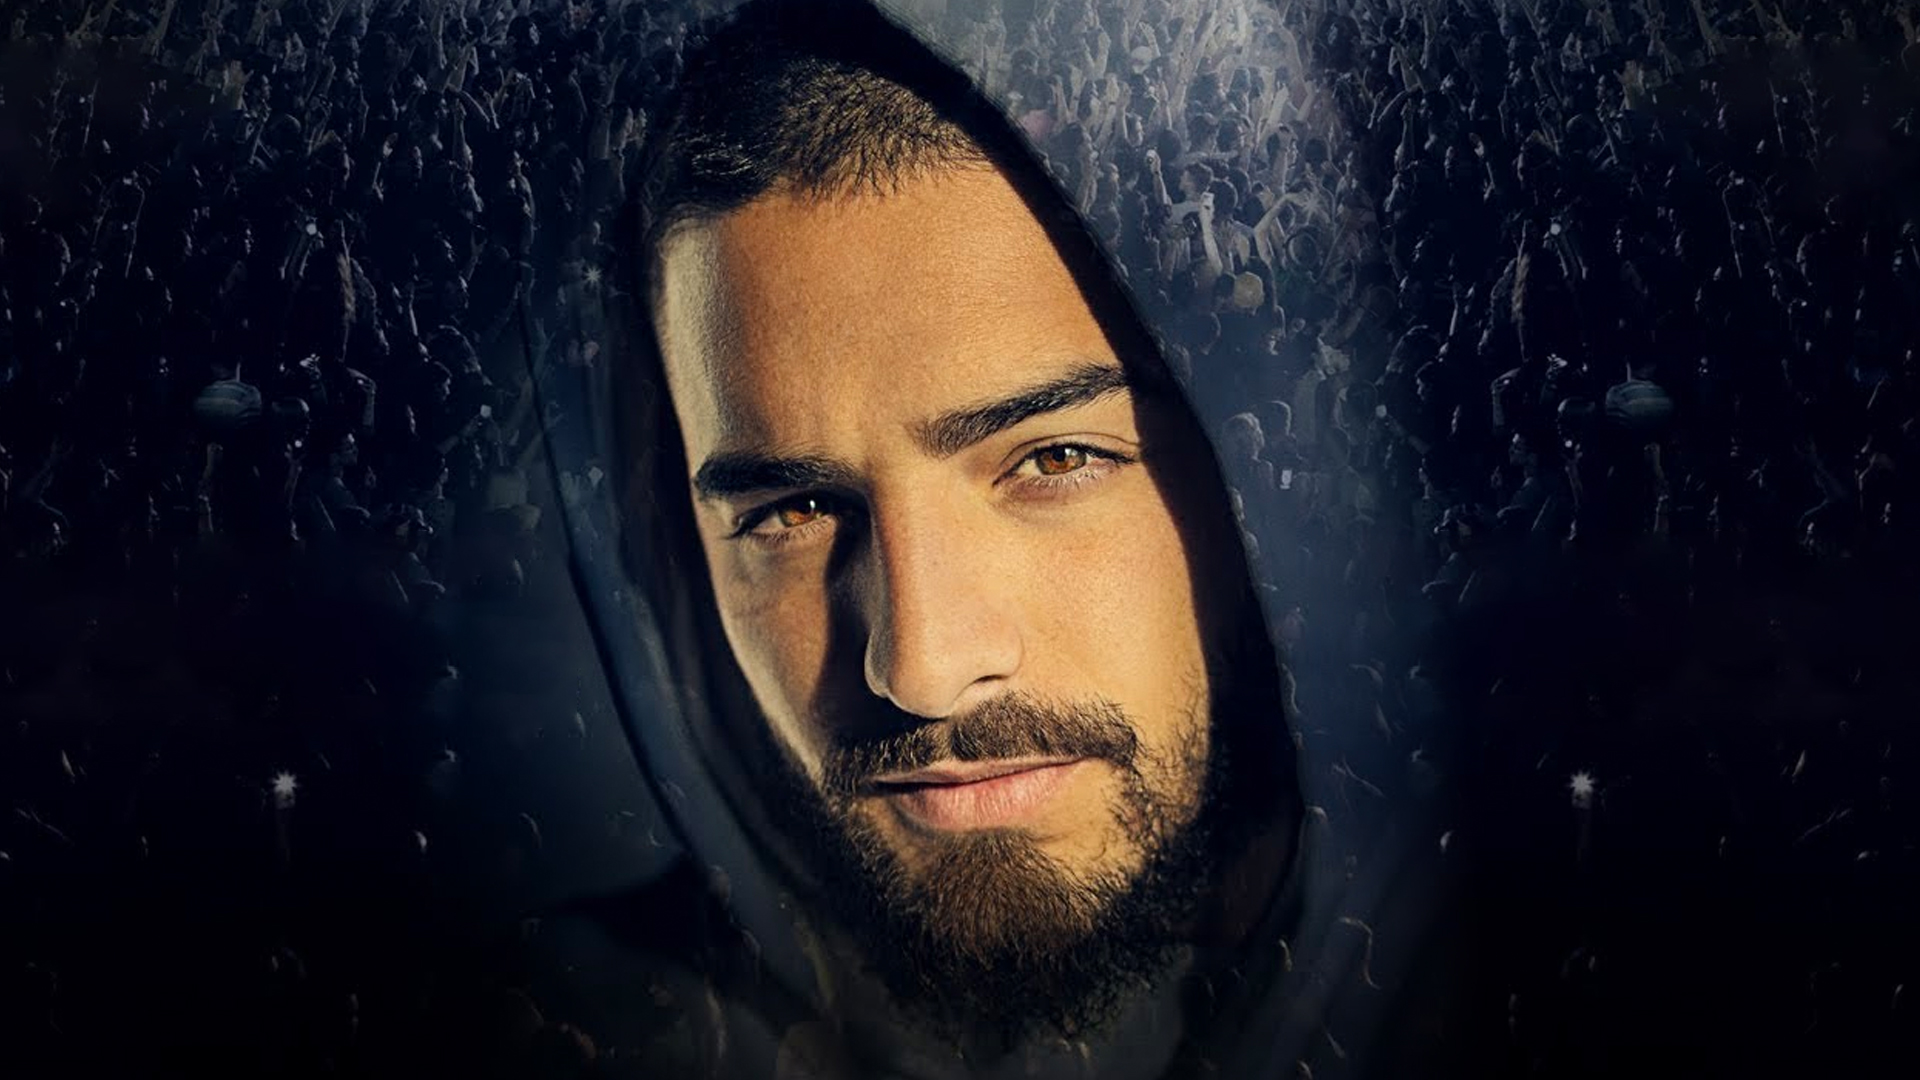 https://www.cinemagiants.com/wp-content/uploads/2020/12/maluma.jpg